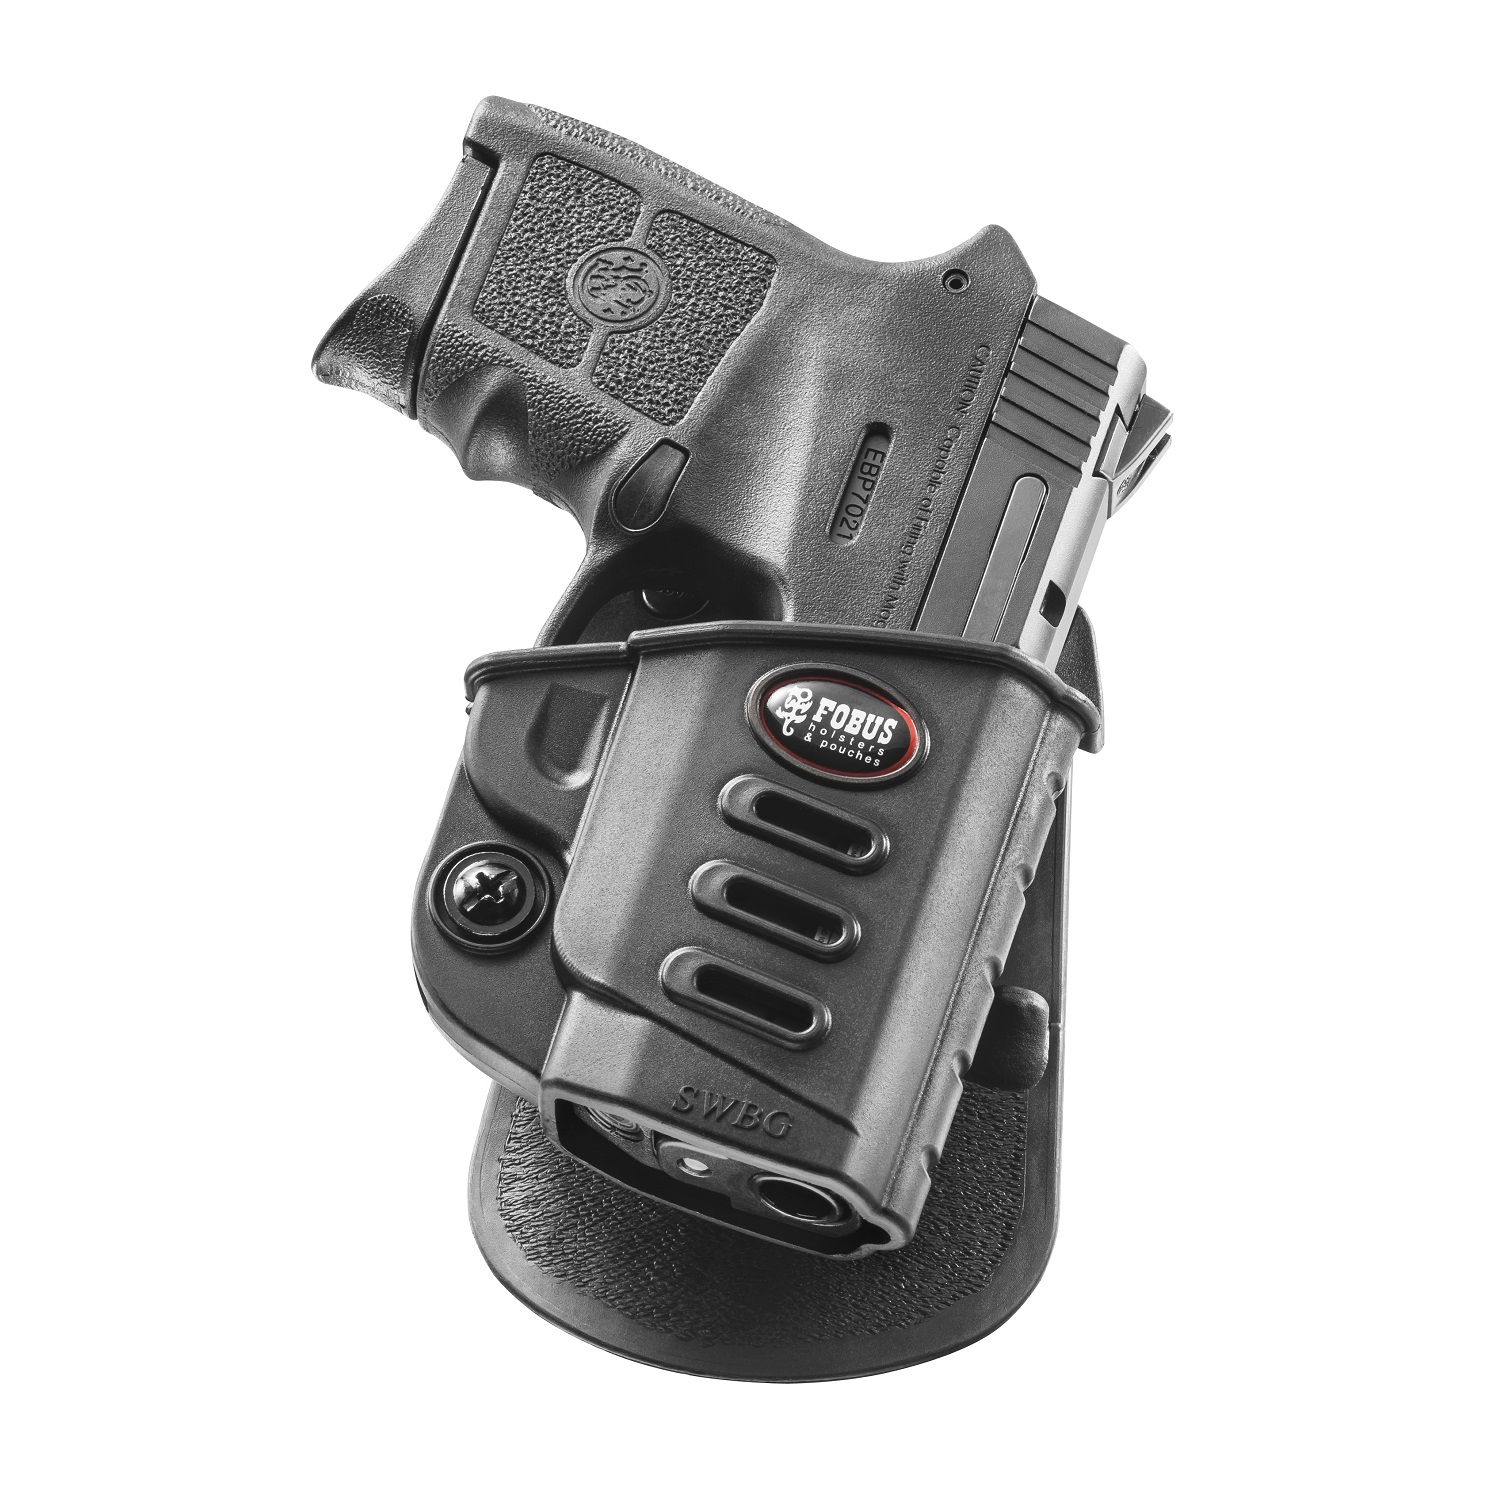 Fobus Evolution Paddle Holster S&W M&P Bodyguard SKU: SWBG with Elite Tactical Cloth by Fobus